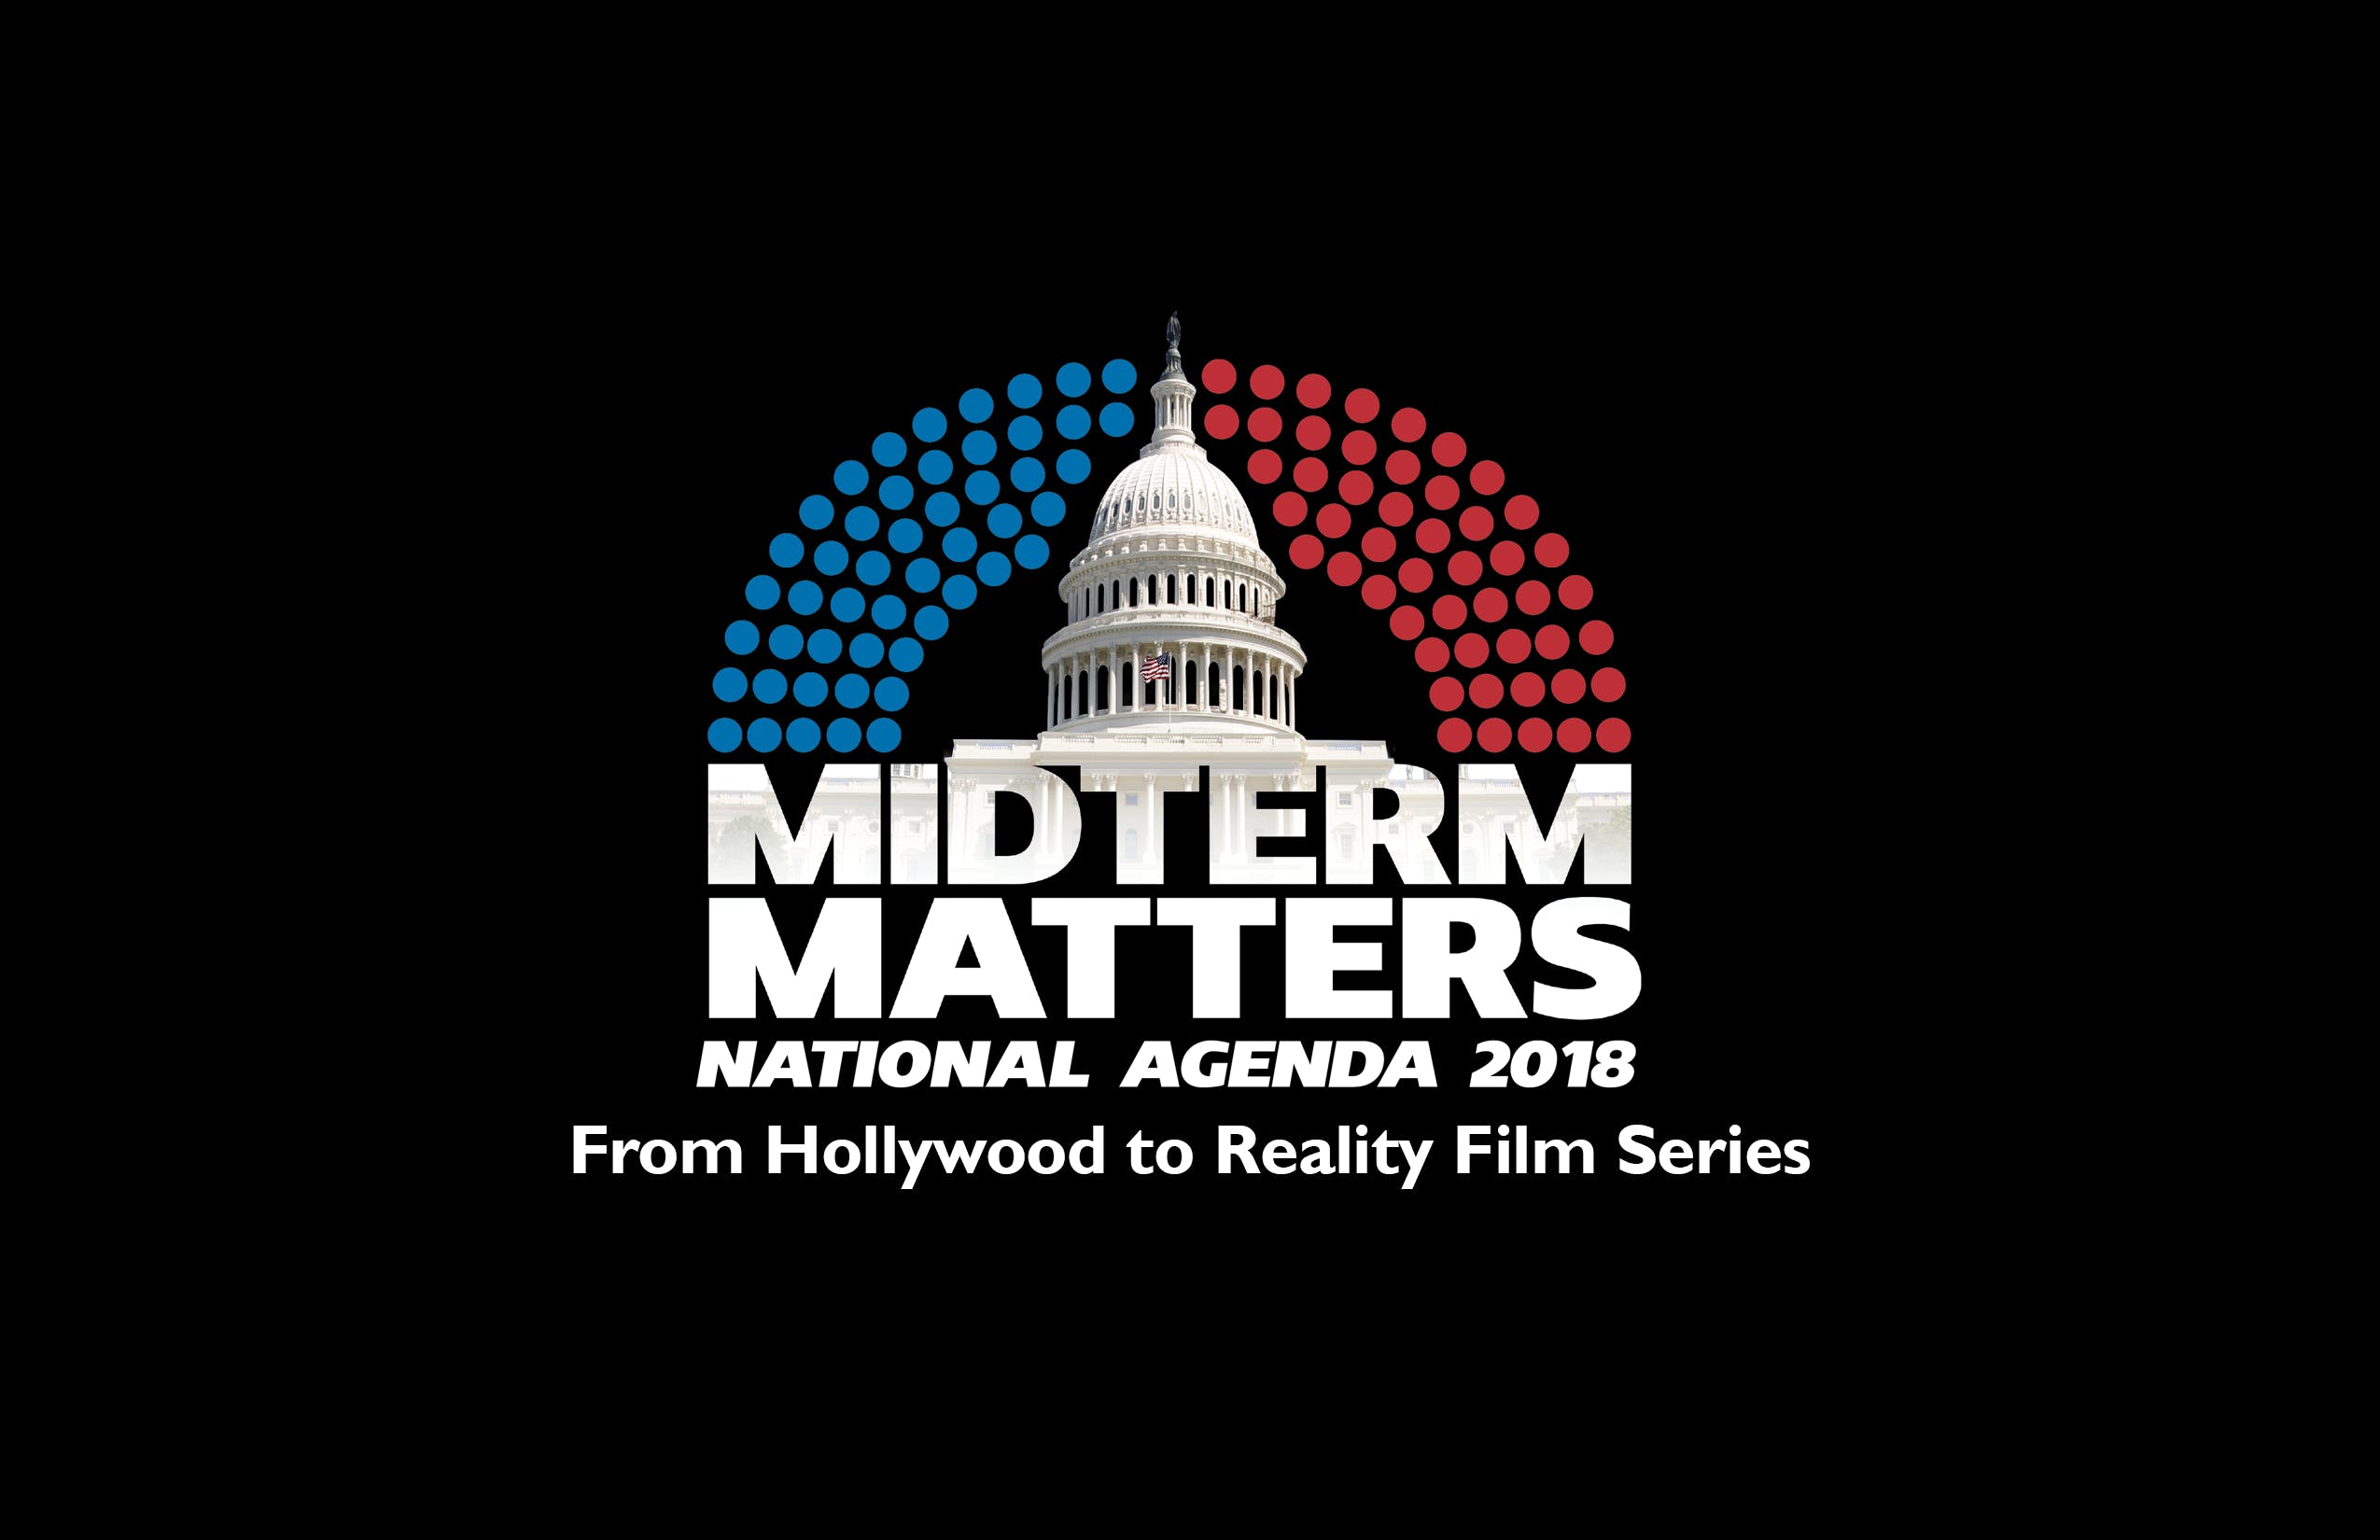 National Agenda 2018 Film Series From Hollywood to Reality